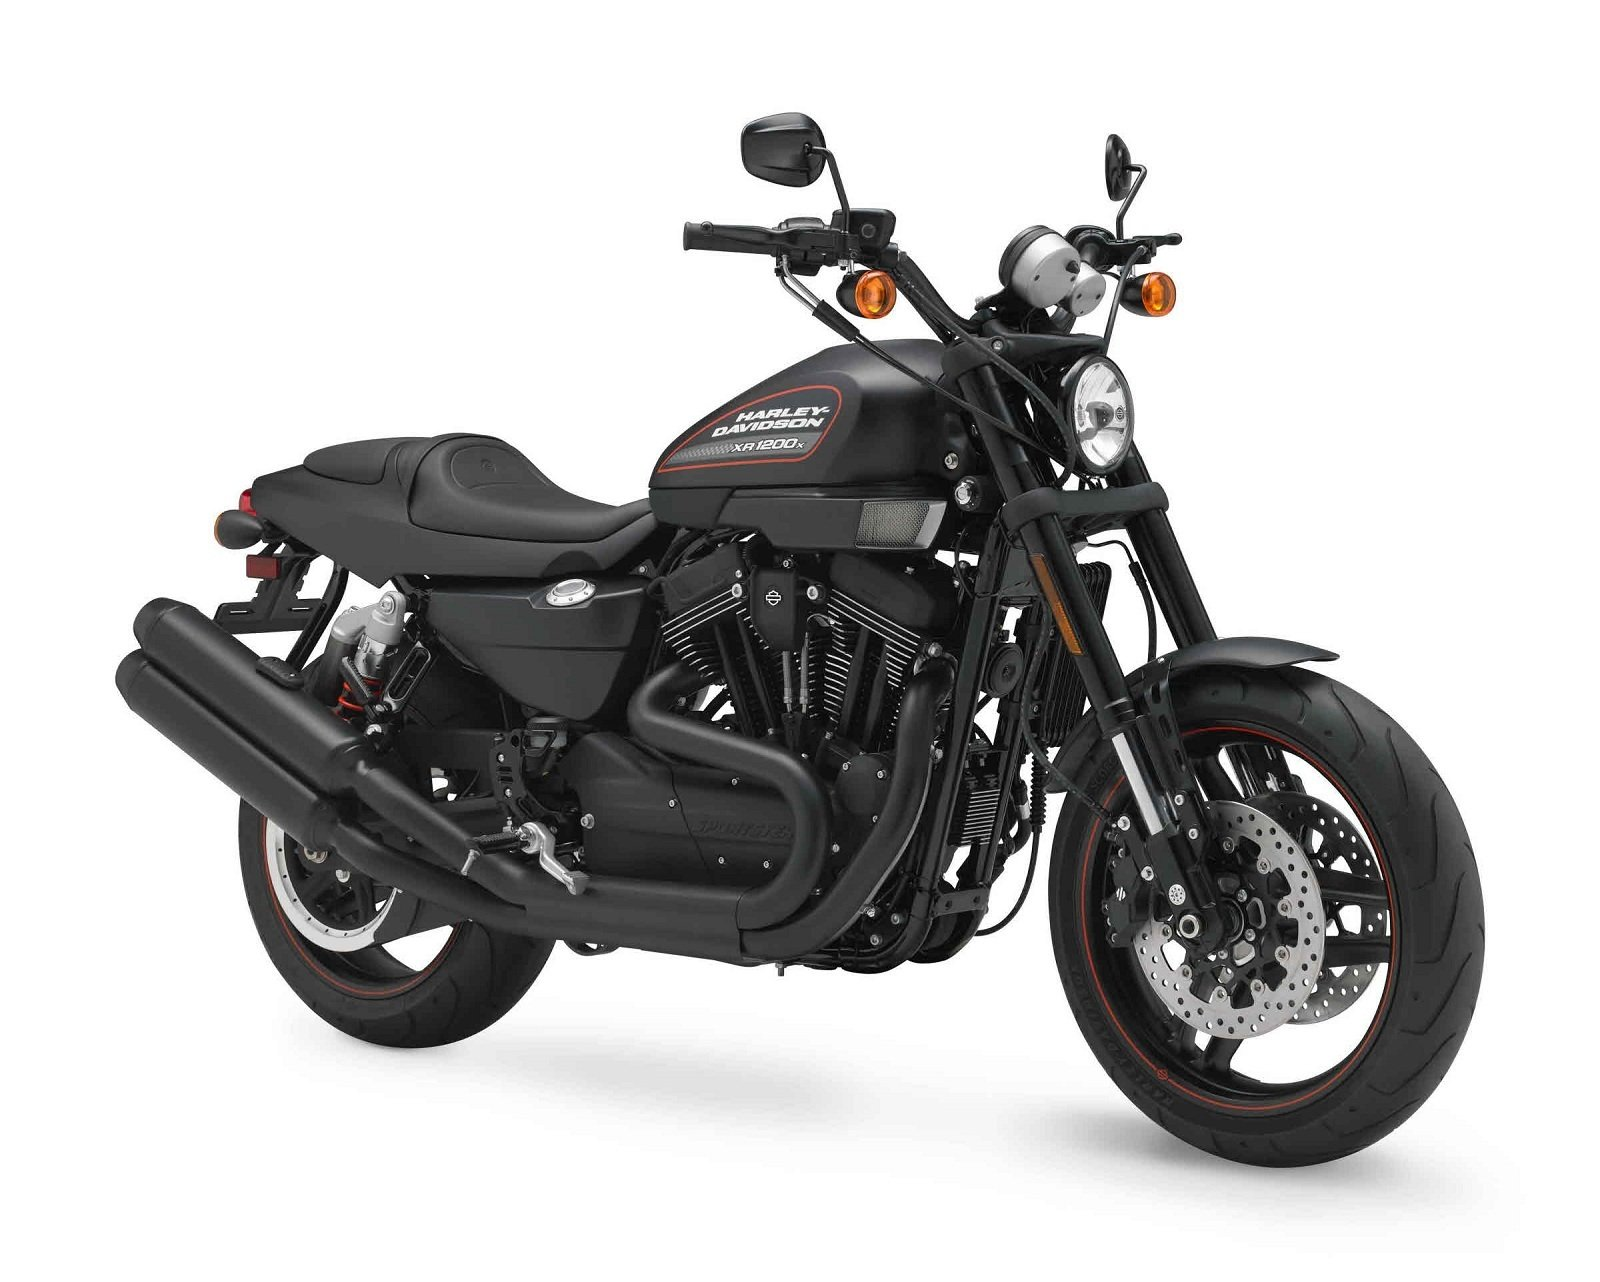 2012 harley davidson sportster xr1200x picture 432428 motorcycle review top speed. Black Bedroom Furniture Sets. Home Design Ideas